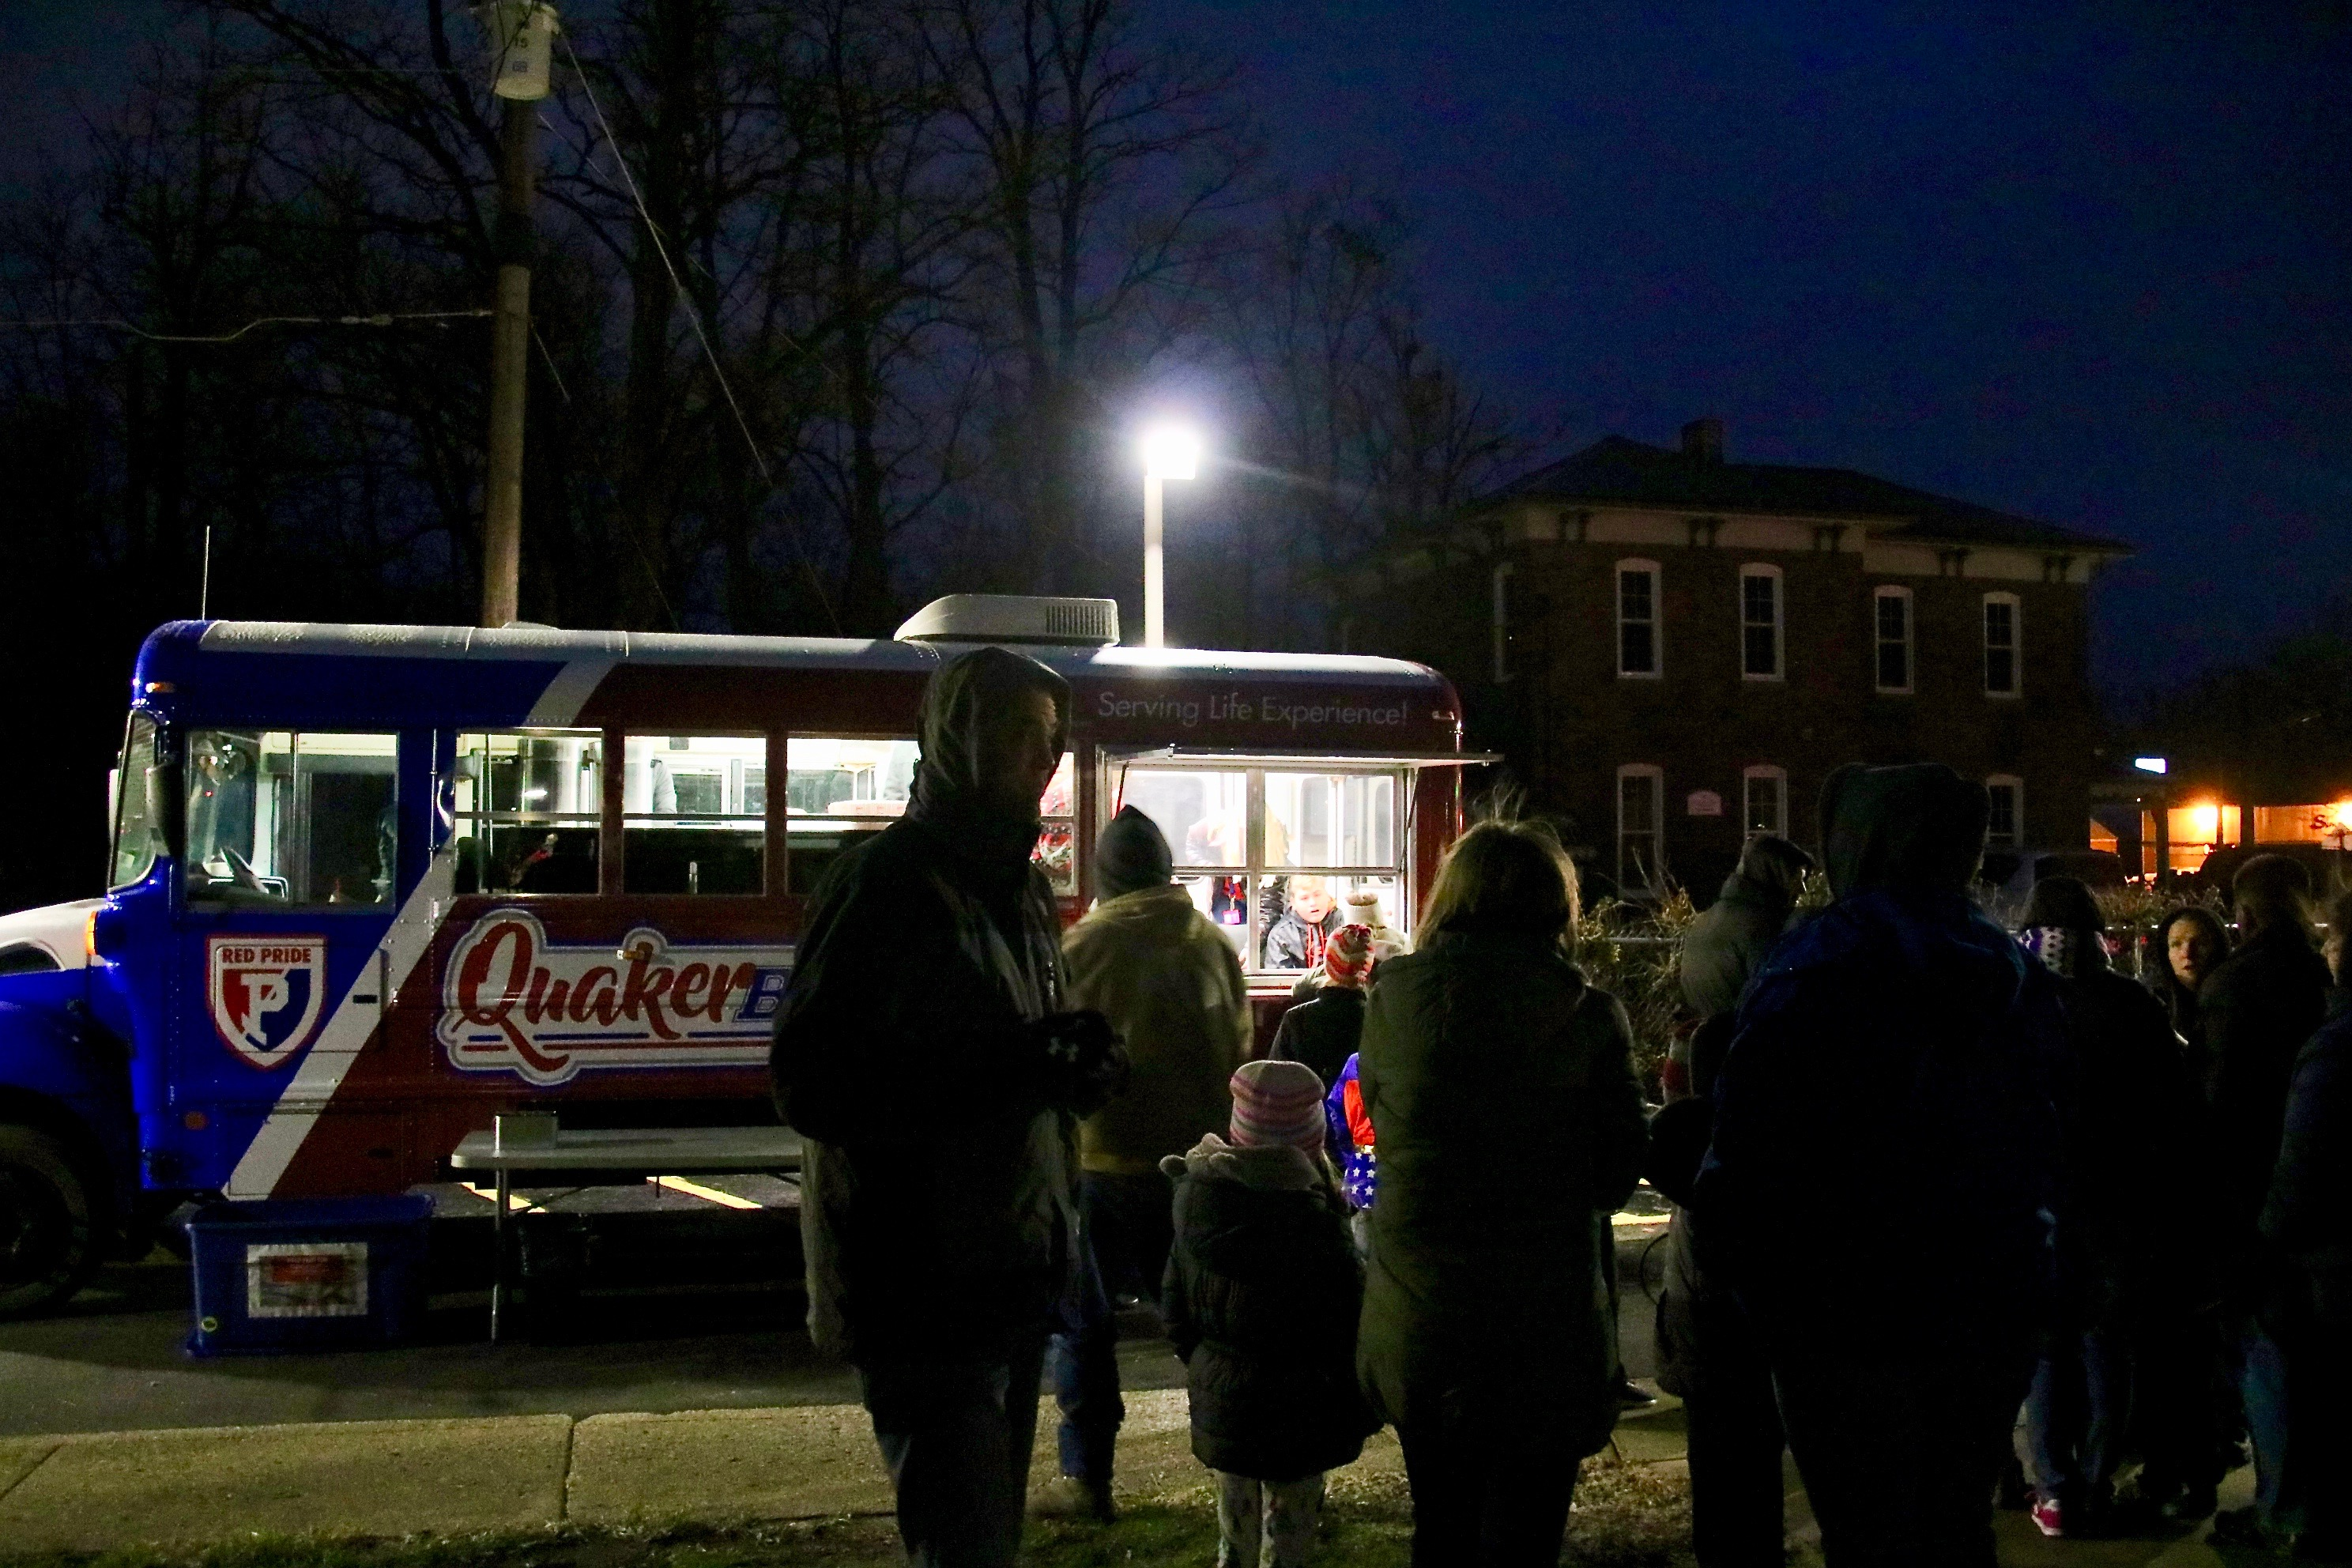 photo of people standing in line at a food truck